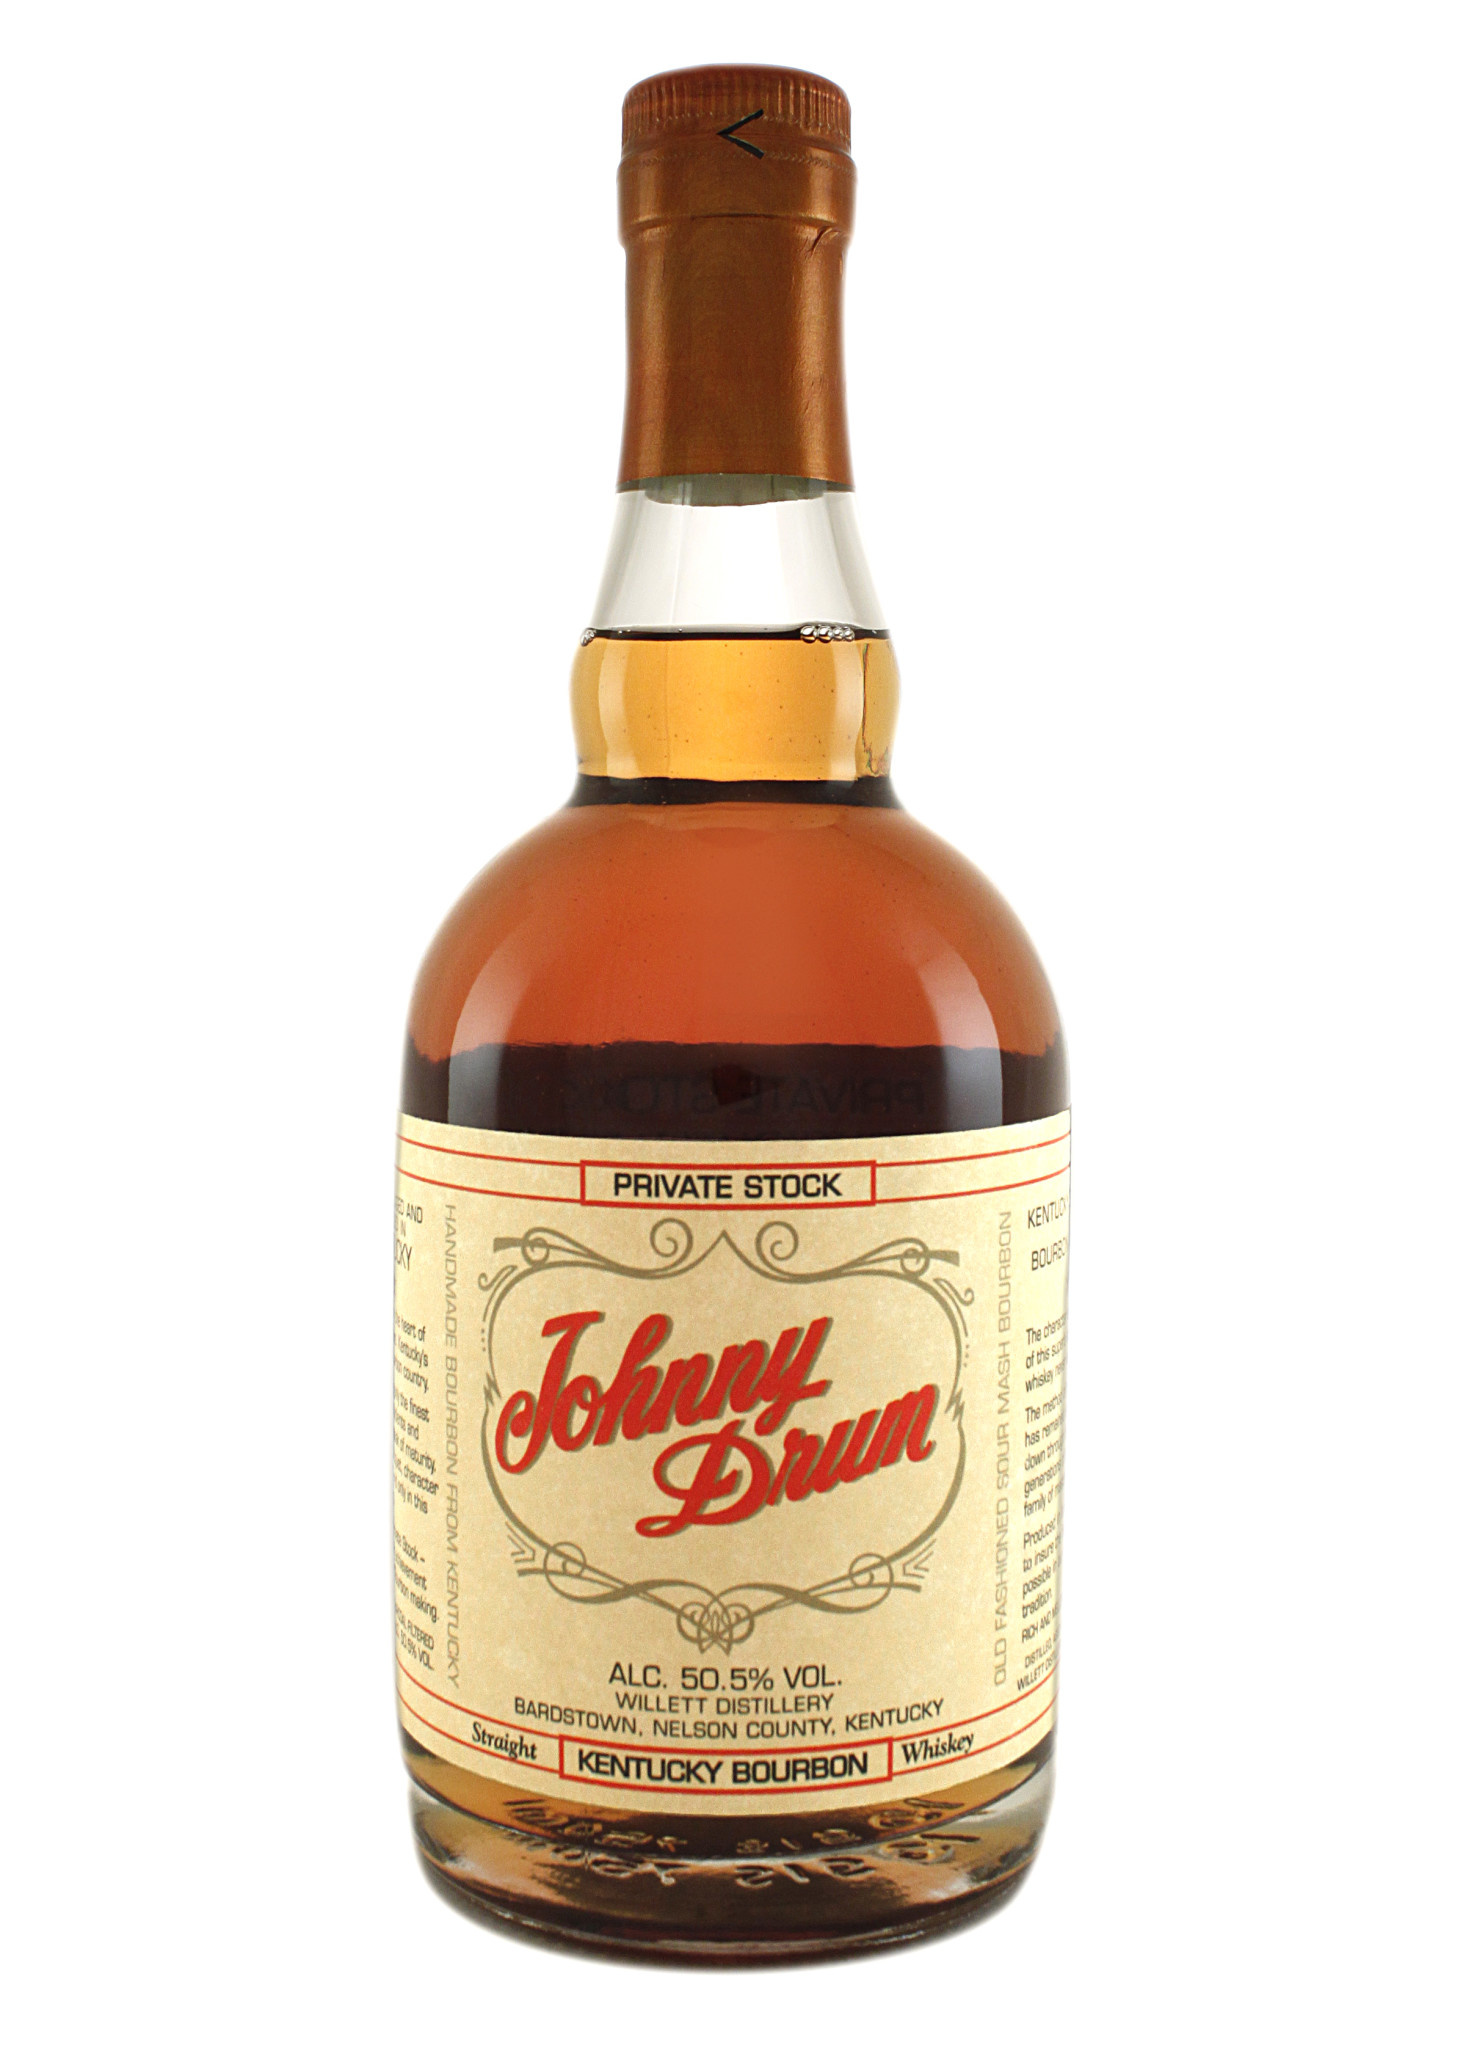 Johnny Drum Private Stock Kentucky Bourbon Whiskey, Bardstown, Kentucky